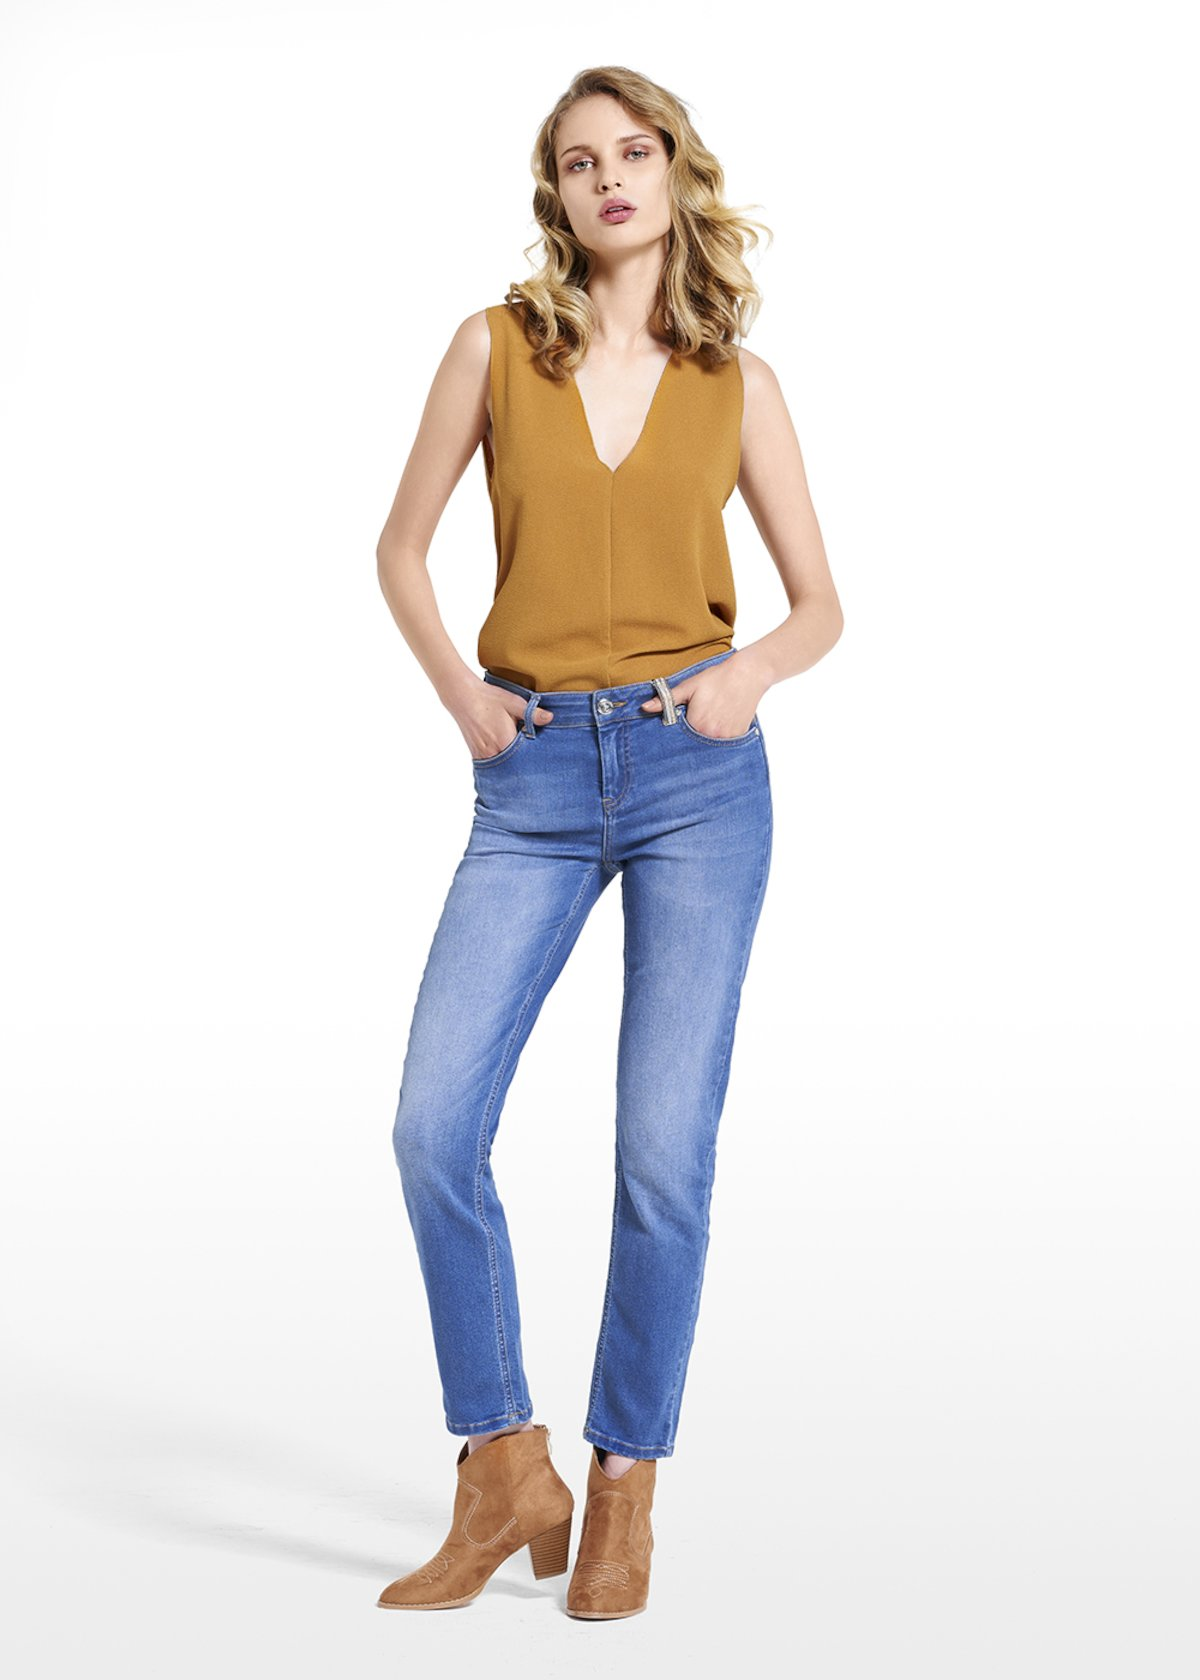 Jeans Donny with lurex detail - Medium Denim - Woman - Category image